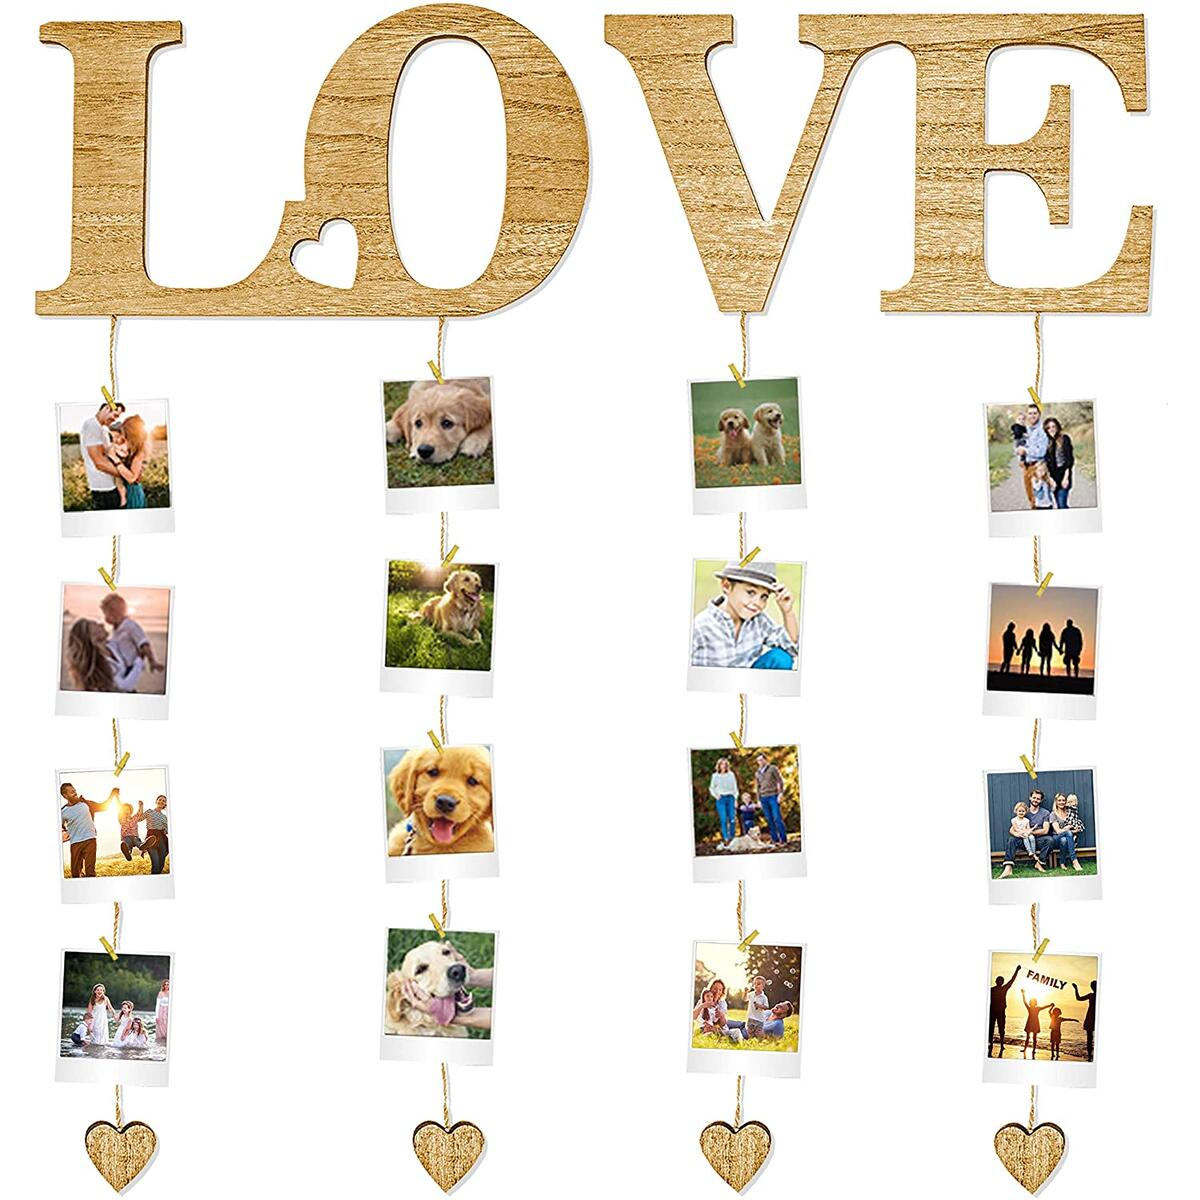 Hanging Moments Love Wall Decor for Bedroom Polaroid Picture Frame Collage for College Dorm Decor Aesthetic Hanging Photo Display with Clips